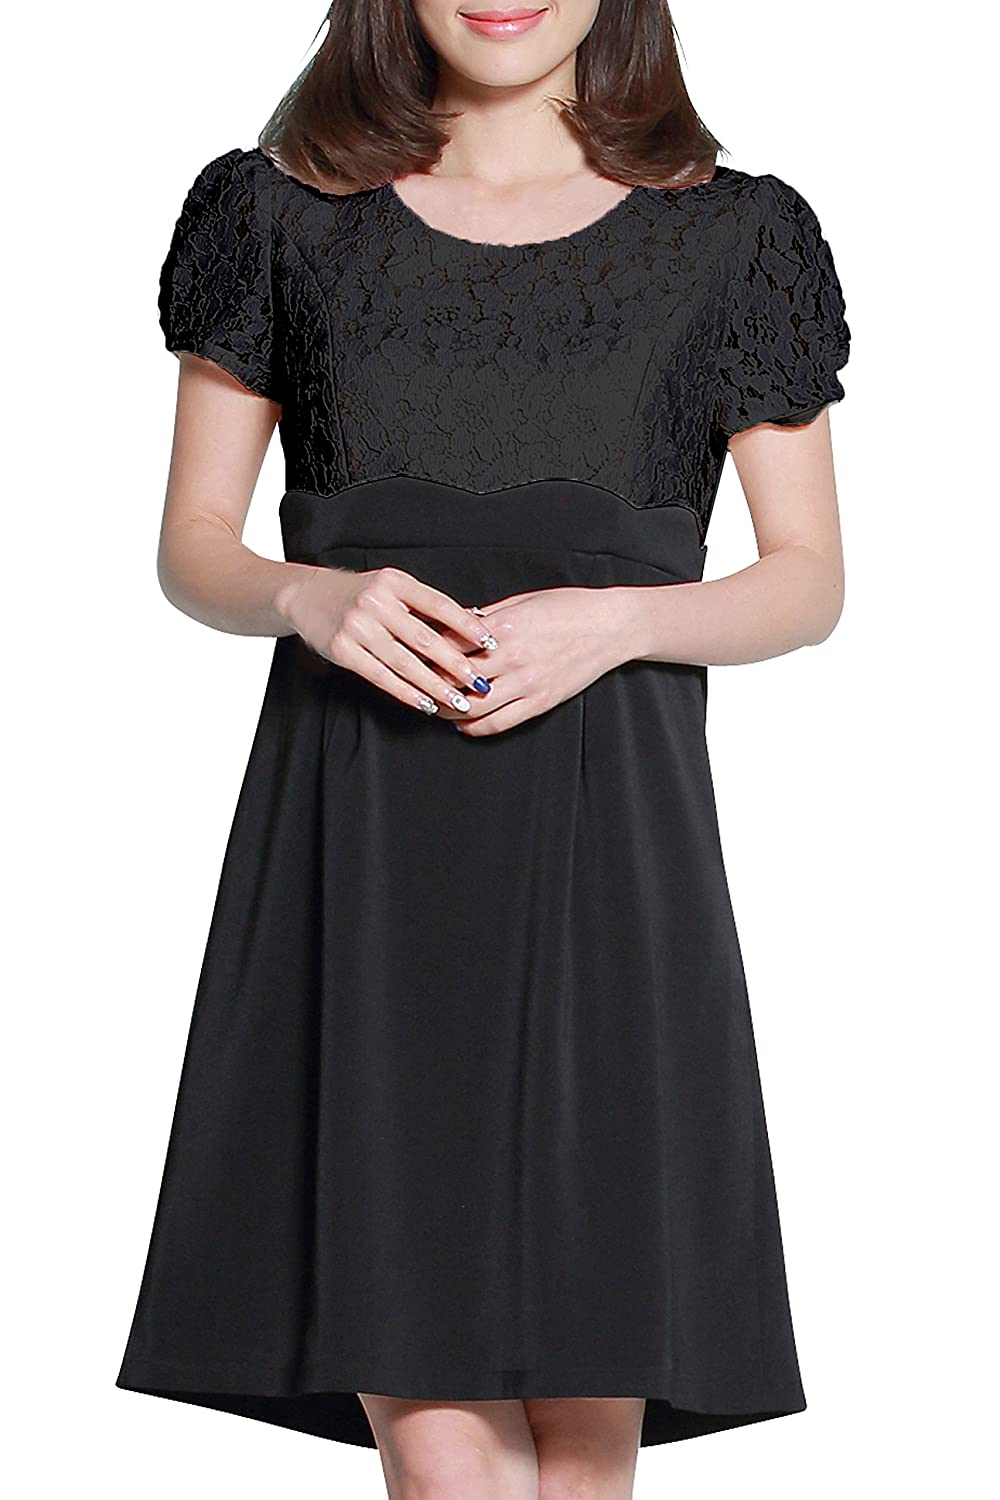 Sweet Mommy Maternity and Nursing Scalloped Lace Short Sleeve Dress Sweet Mommy Co. Ltd. so5103